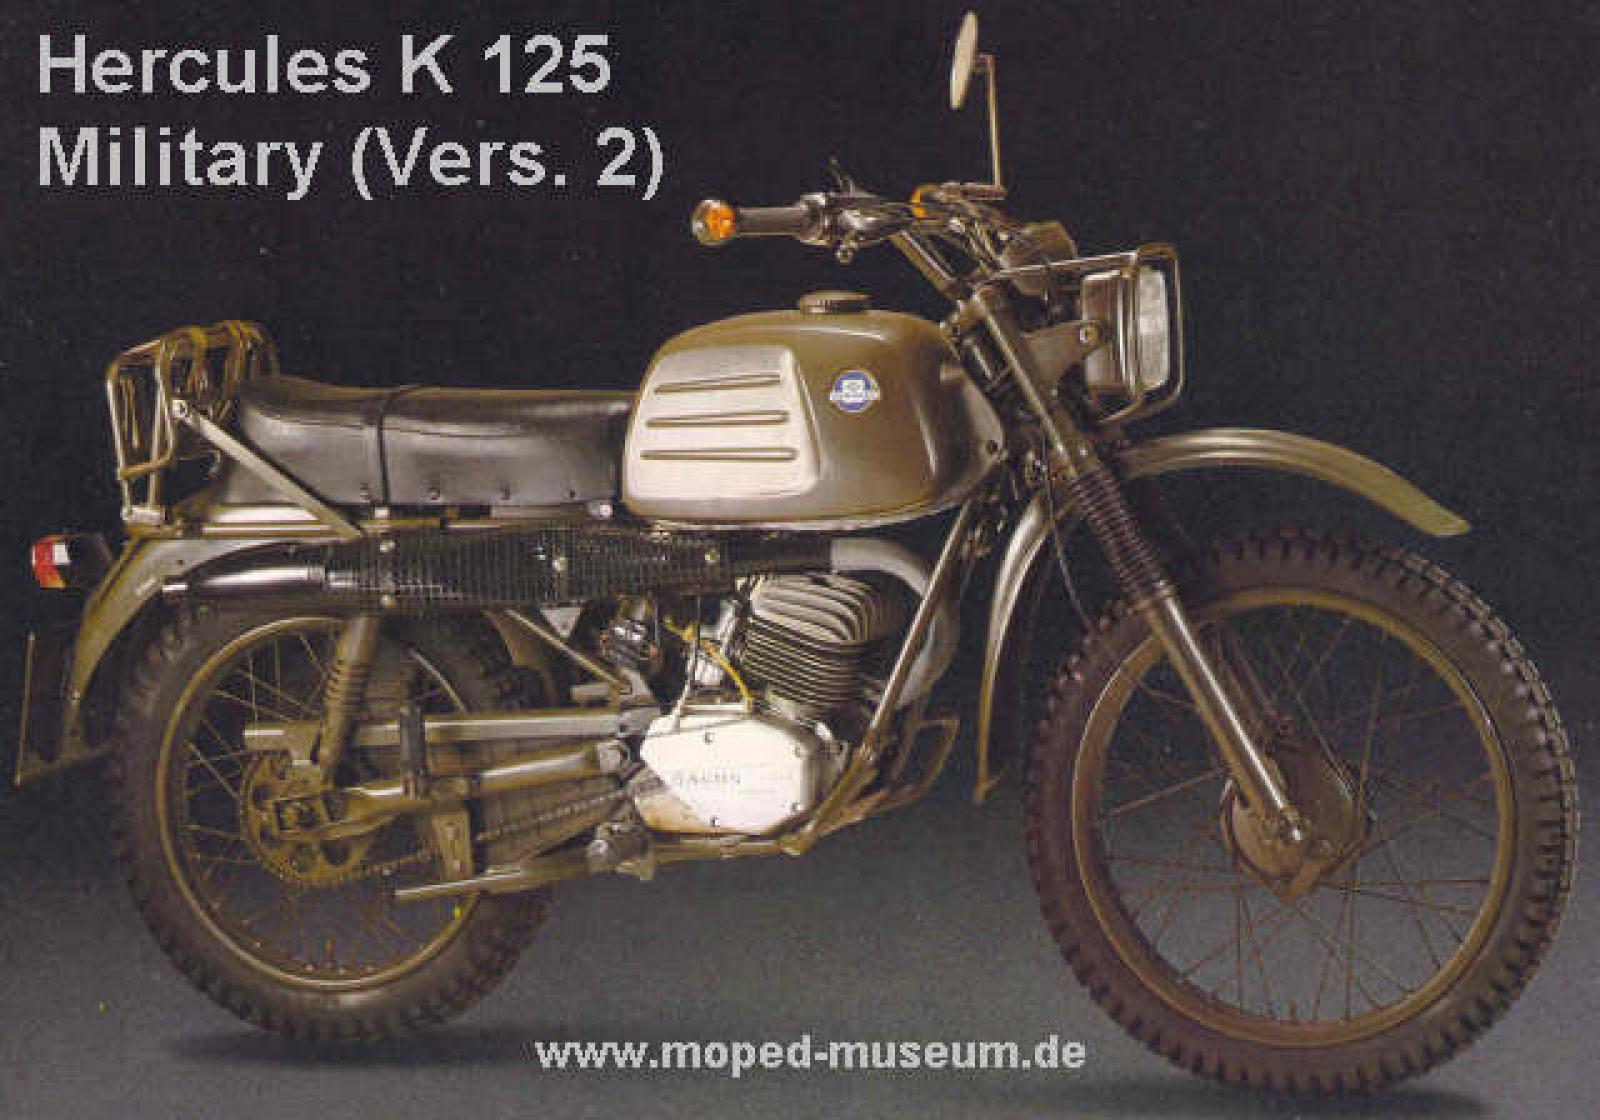 Hercules K 125 Military 1981 images #74451